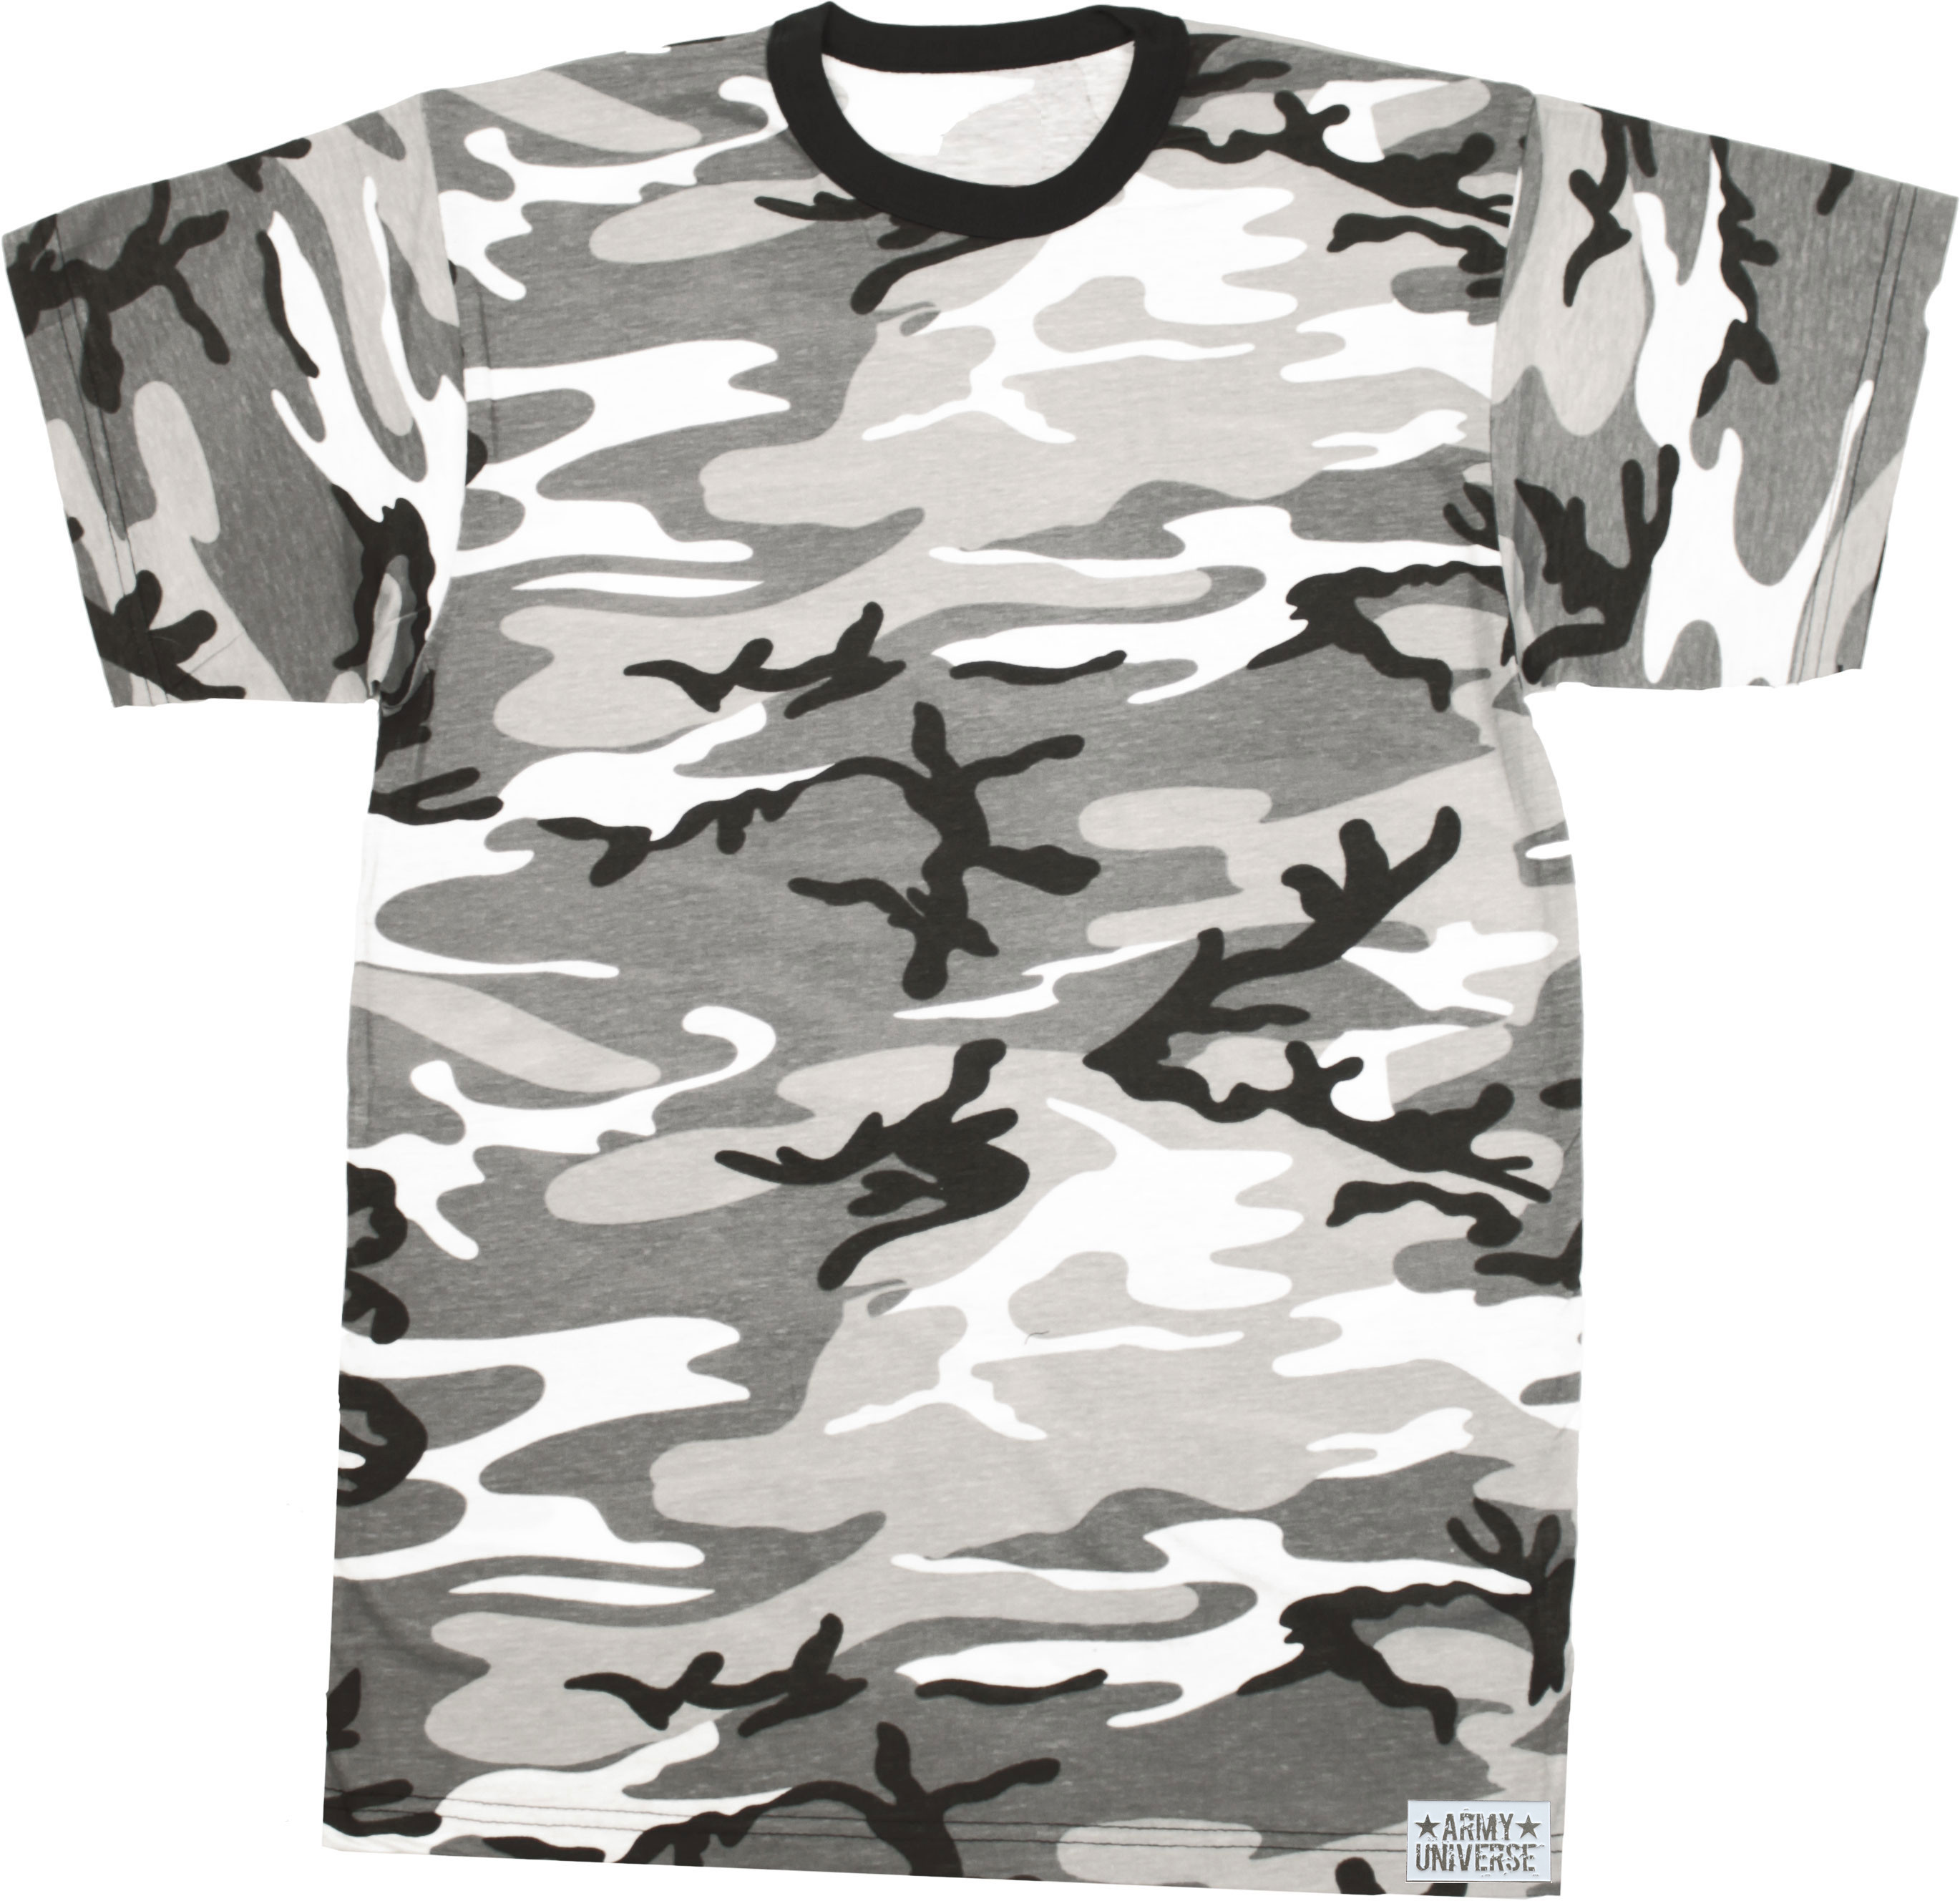 More Views. Camouflage Military Crewneck Short Sleeve T Shirt w   ArmyUniverse® Pin 90d6d617c5c